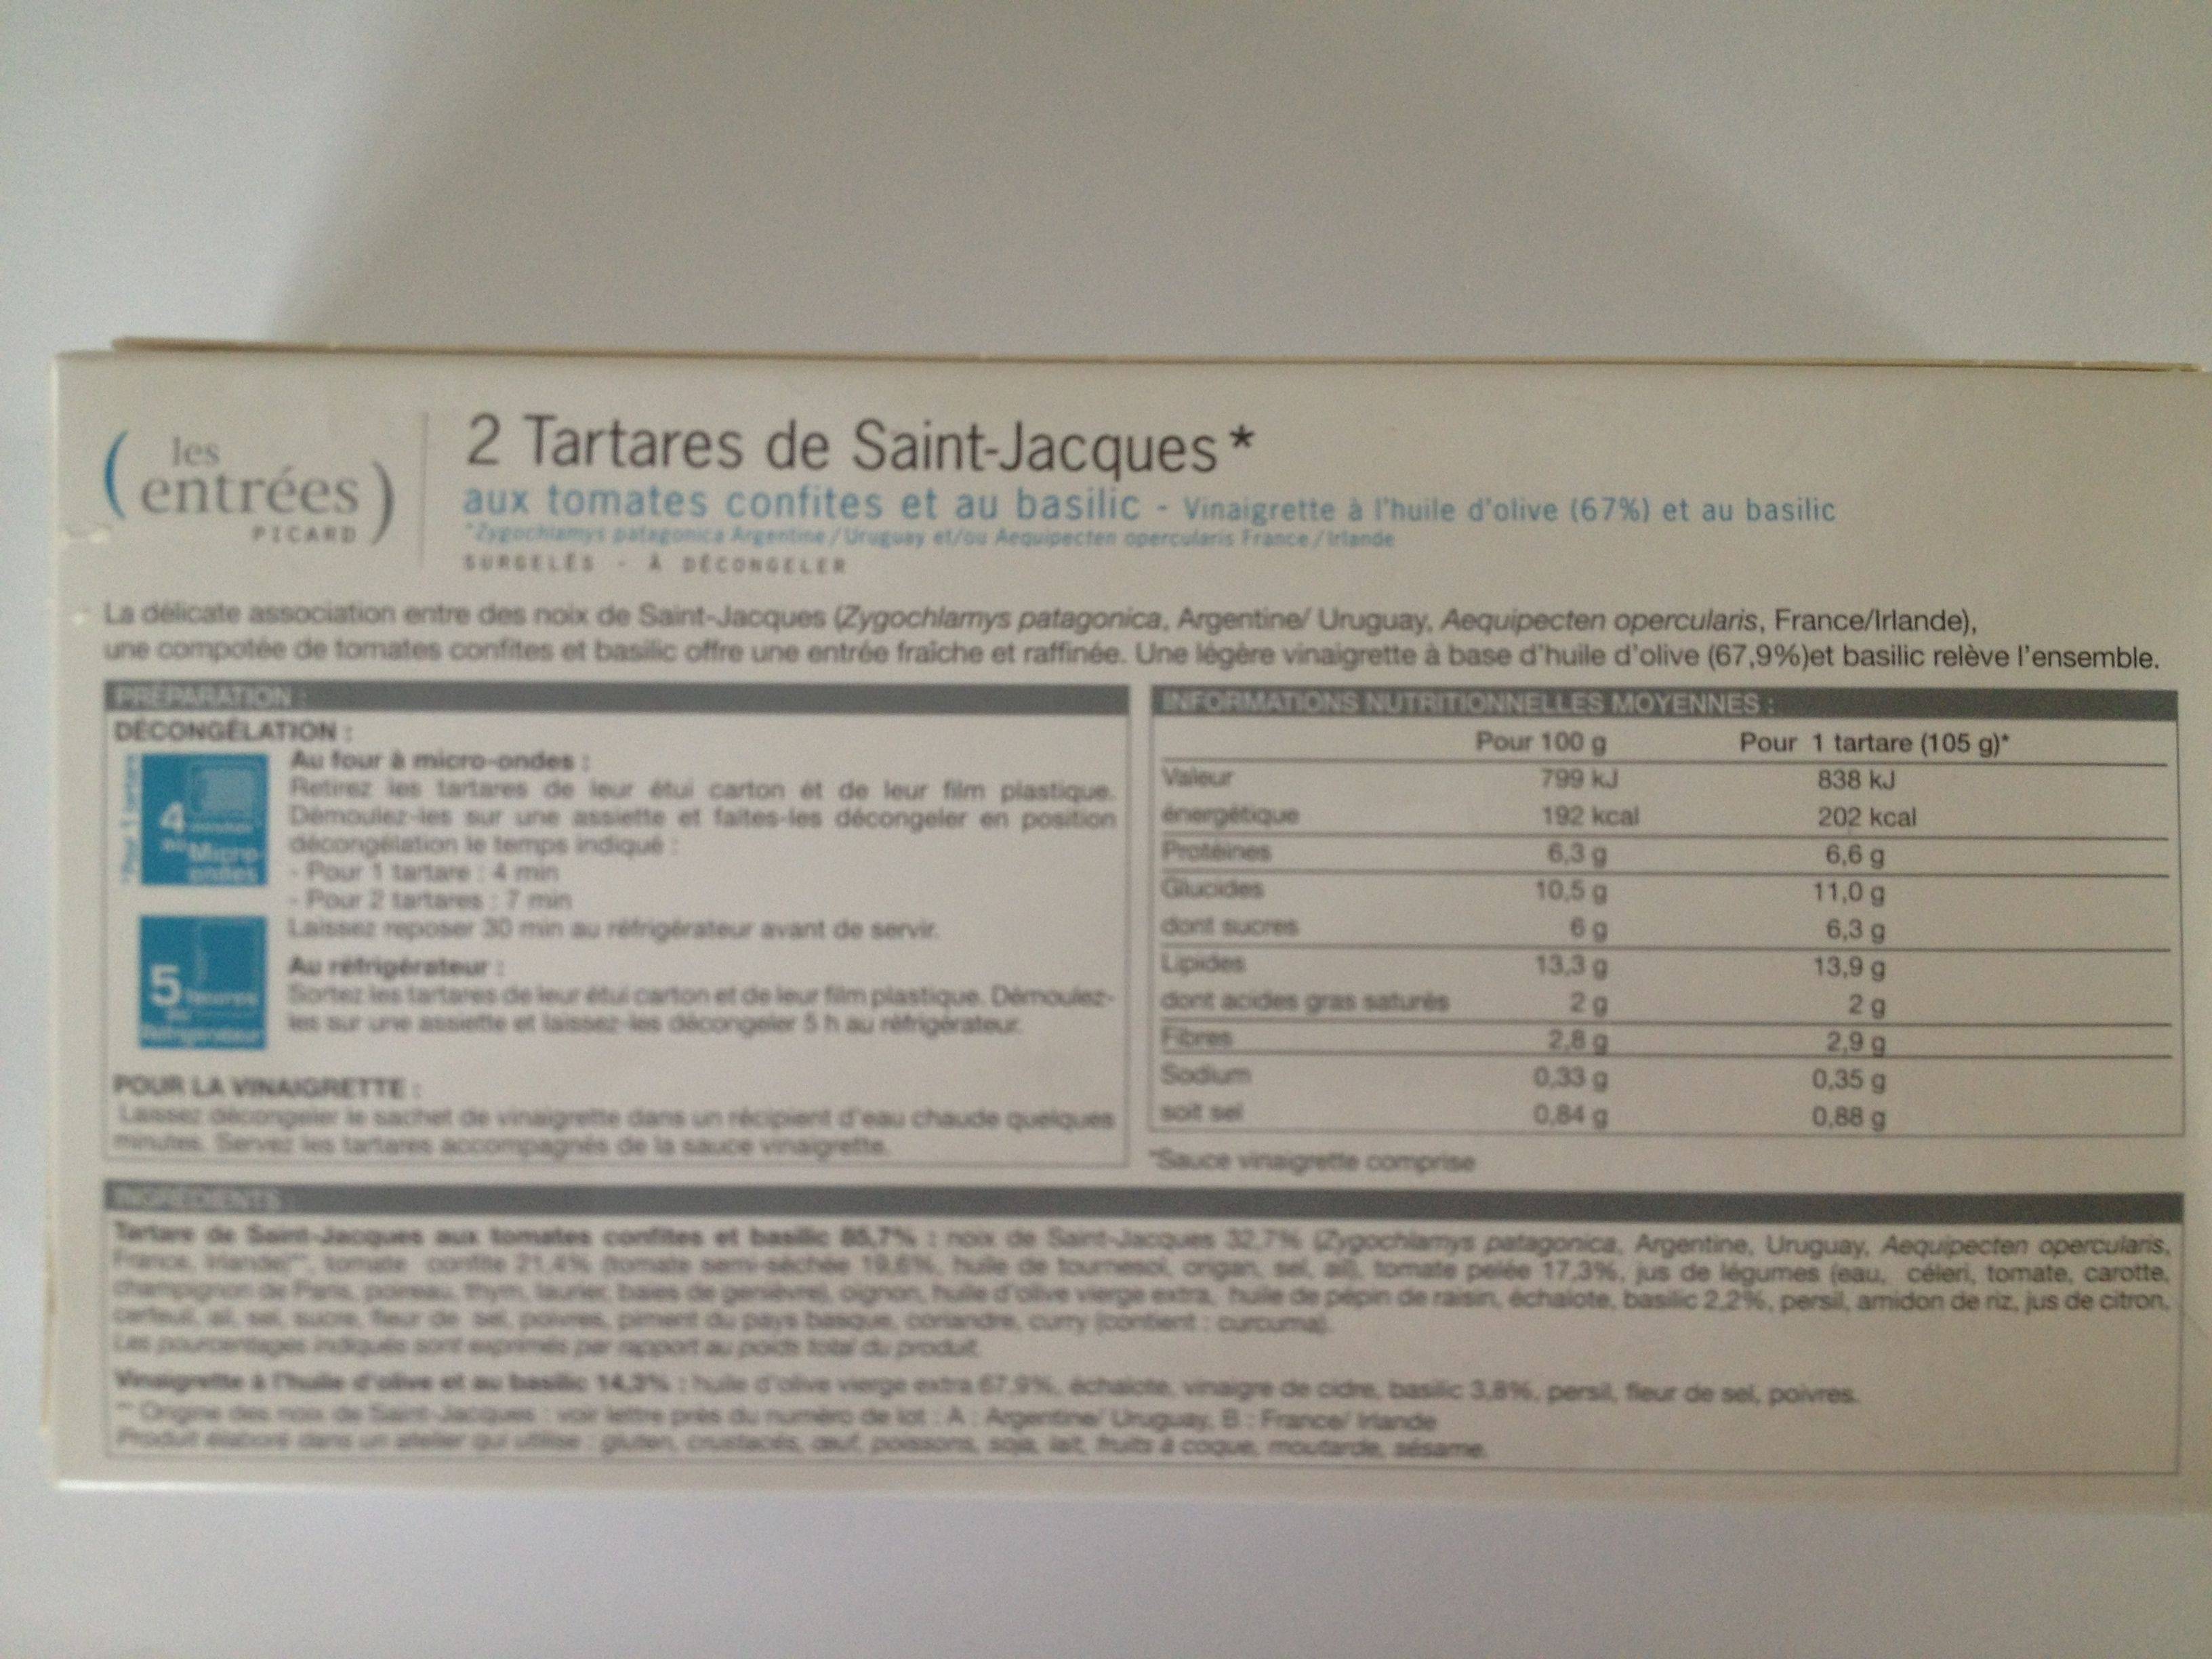 2 tartares de saint-jacques - Ingredients